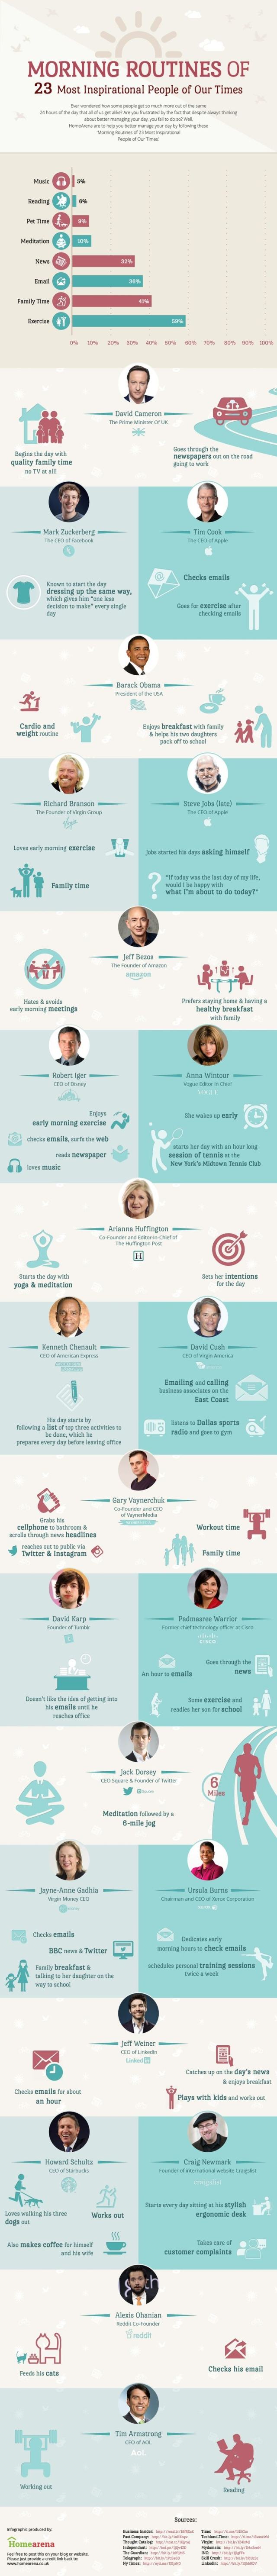 Start The Right Way! Morning Routines of the World's Most Famous People